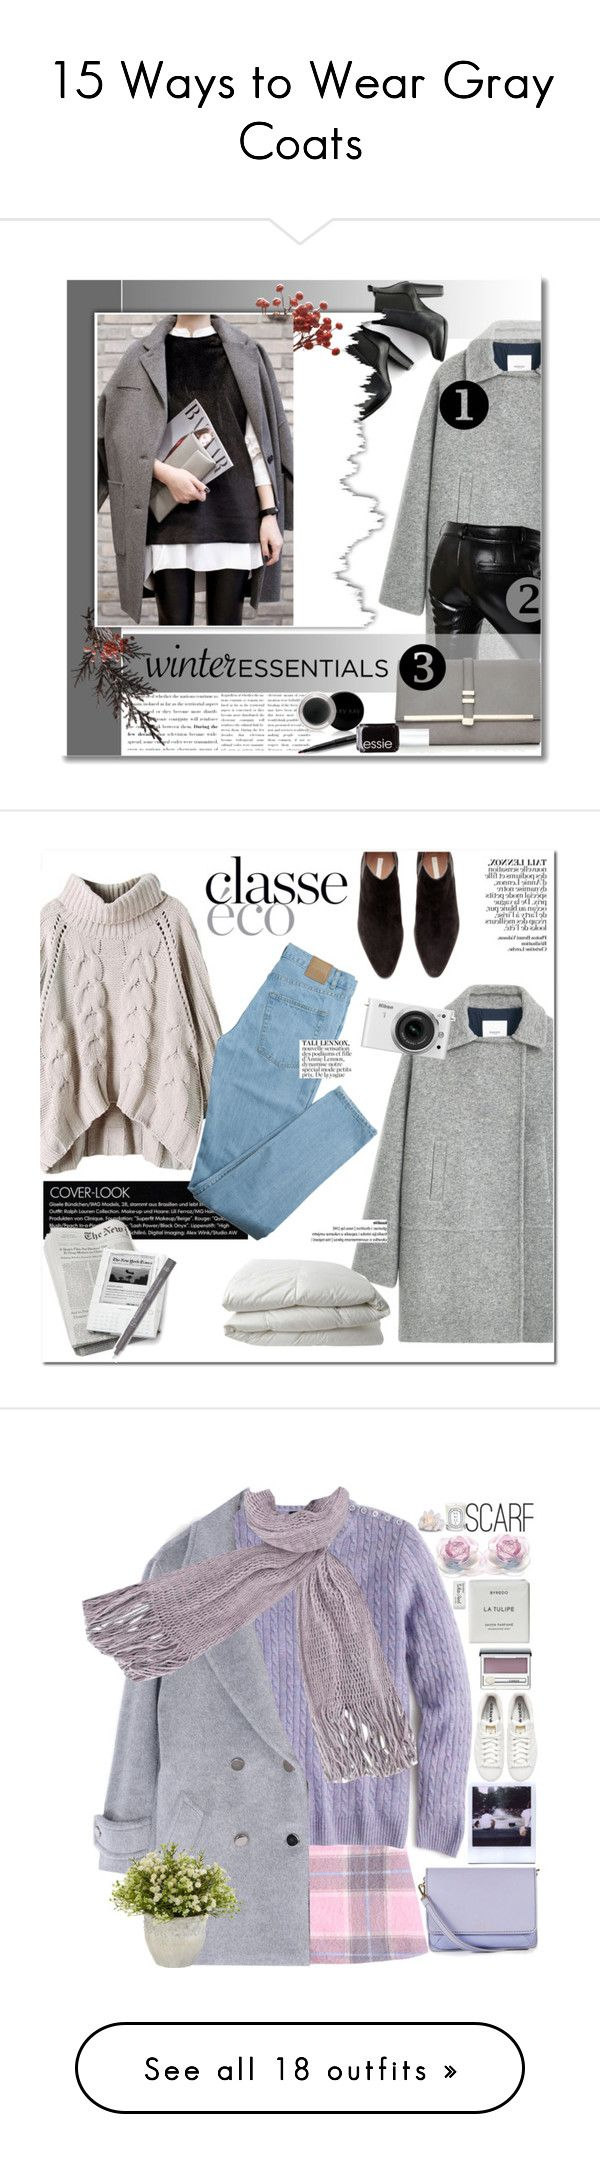 """15 Ways to Wear Gray Coats"" by polyvore-editorial ❤ liked on Polyvore featuring waystowear, graycoat, MANGO, Each X Other, SWEET MANGO, Wallis, Mary Kay, Essie, winteressentials and H&M"